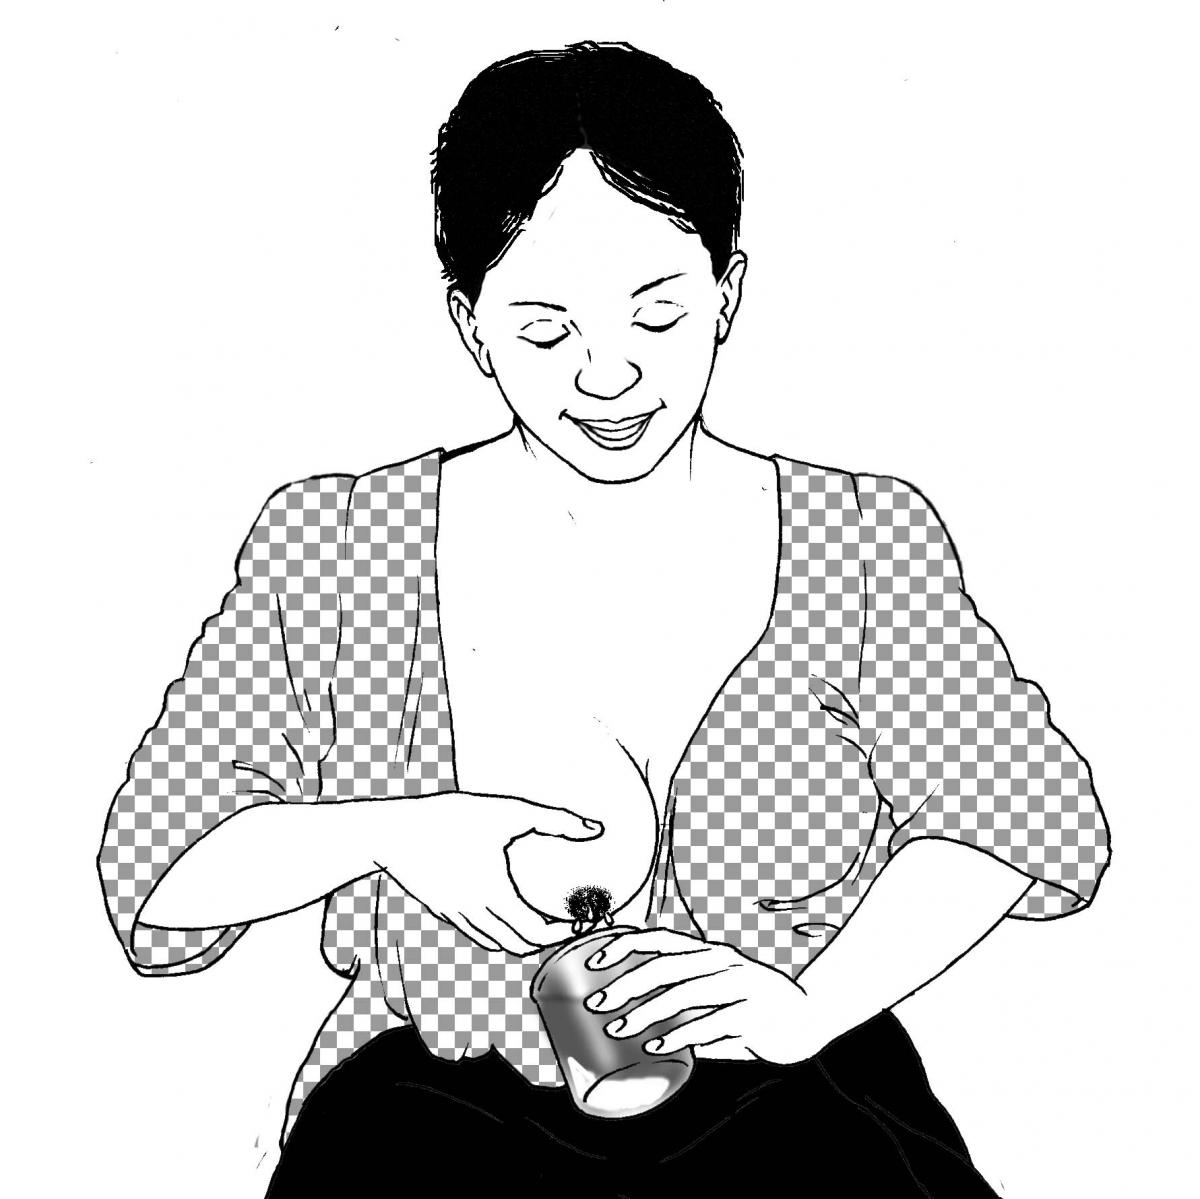 Breastfeeding - Expressing breastmilk - 02 - Non-country specific